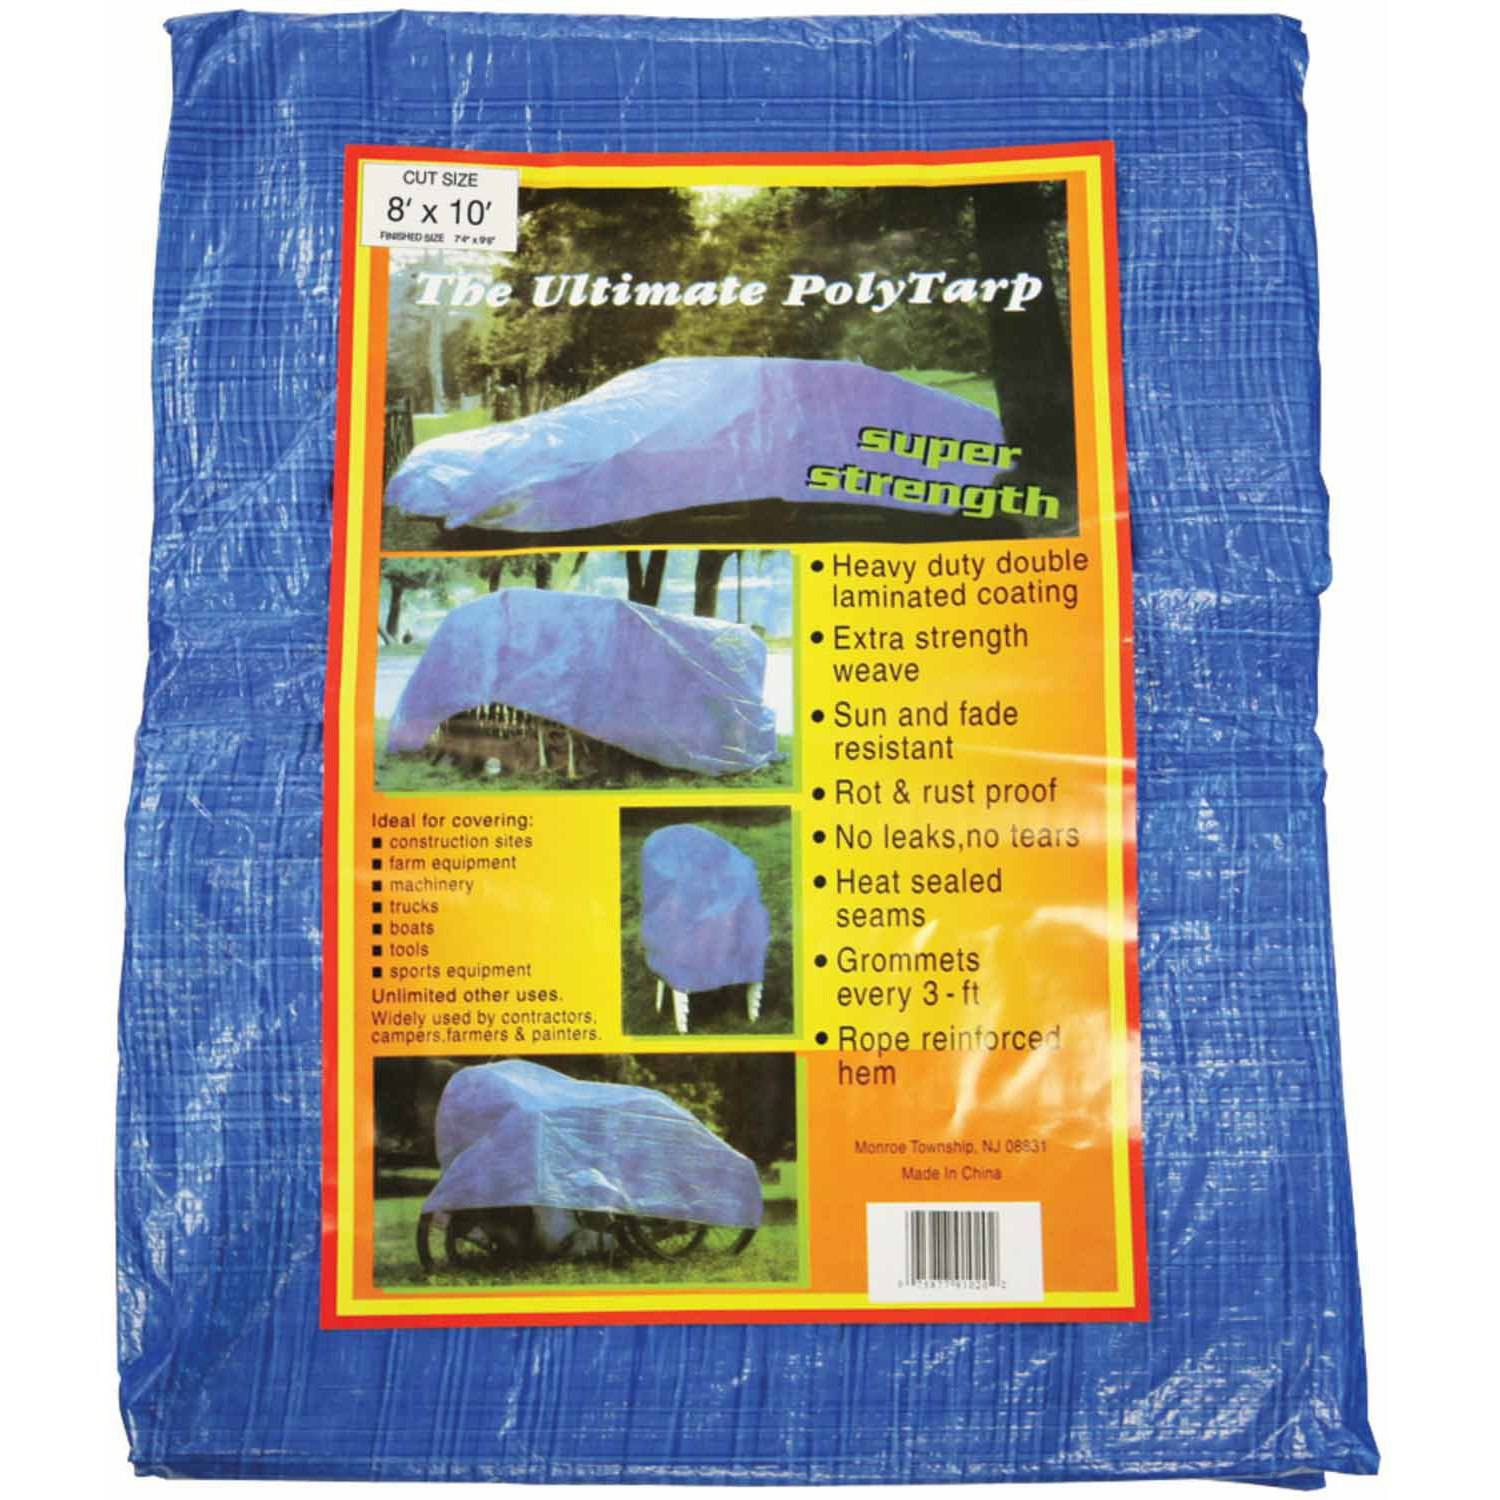 Howard Berger V810 Reinforced Plastic Tarp, 8' x 10'